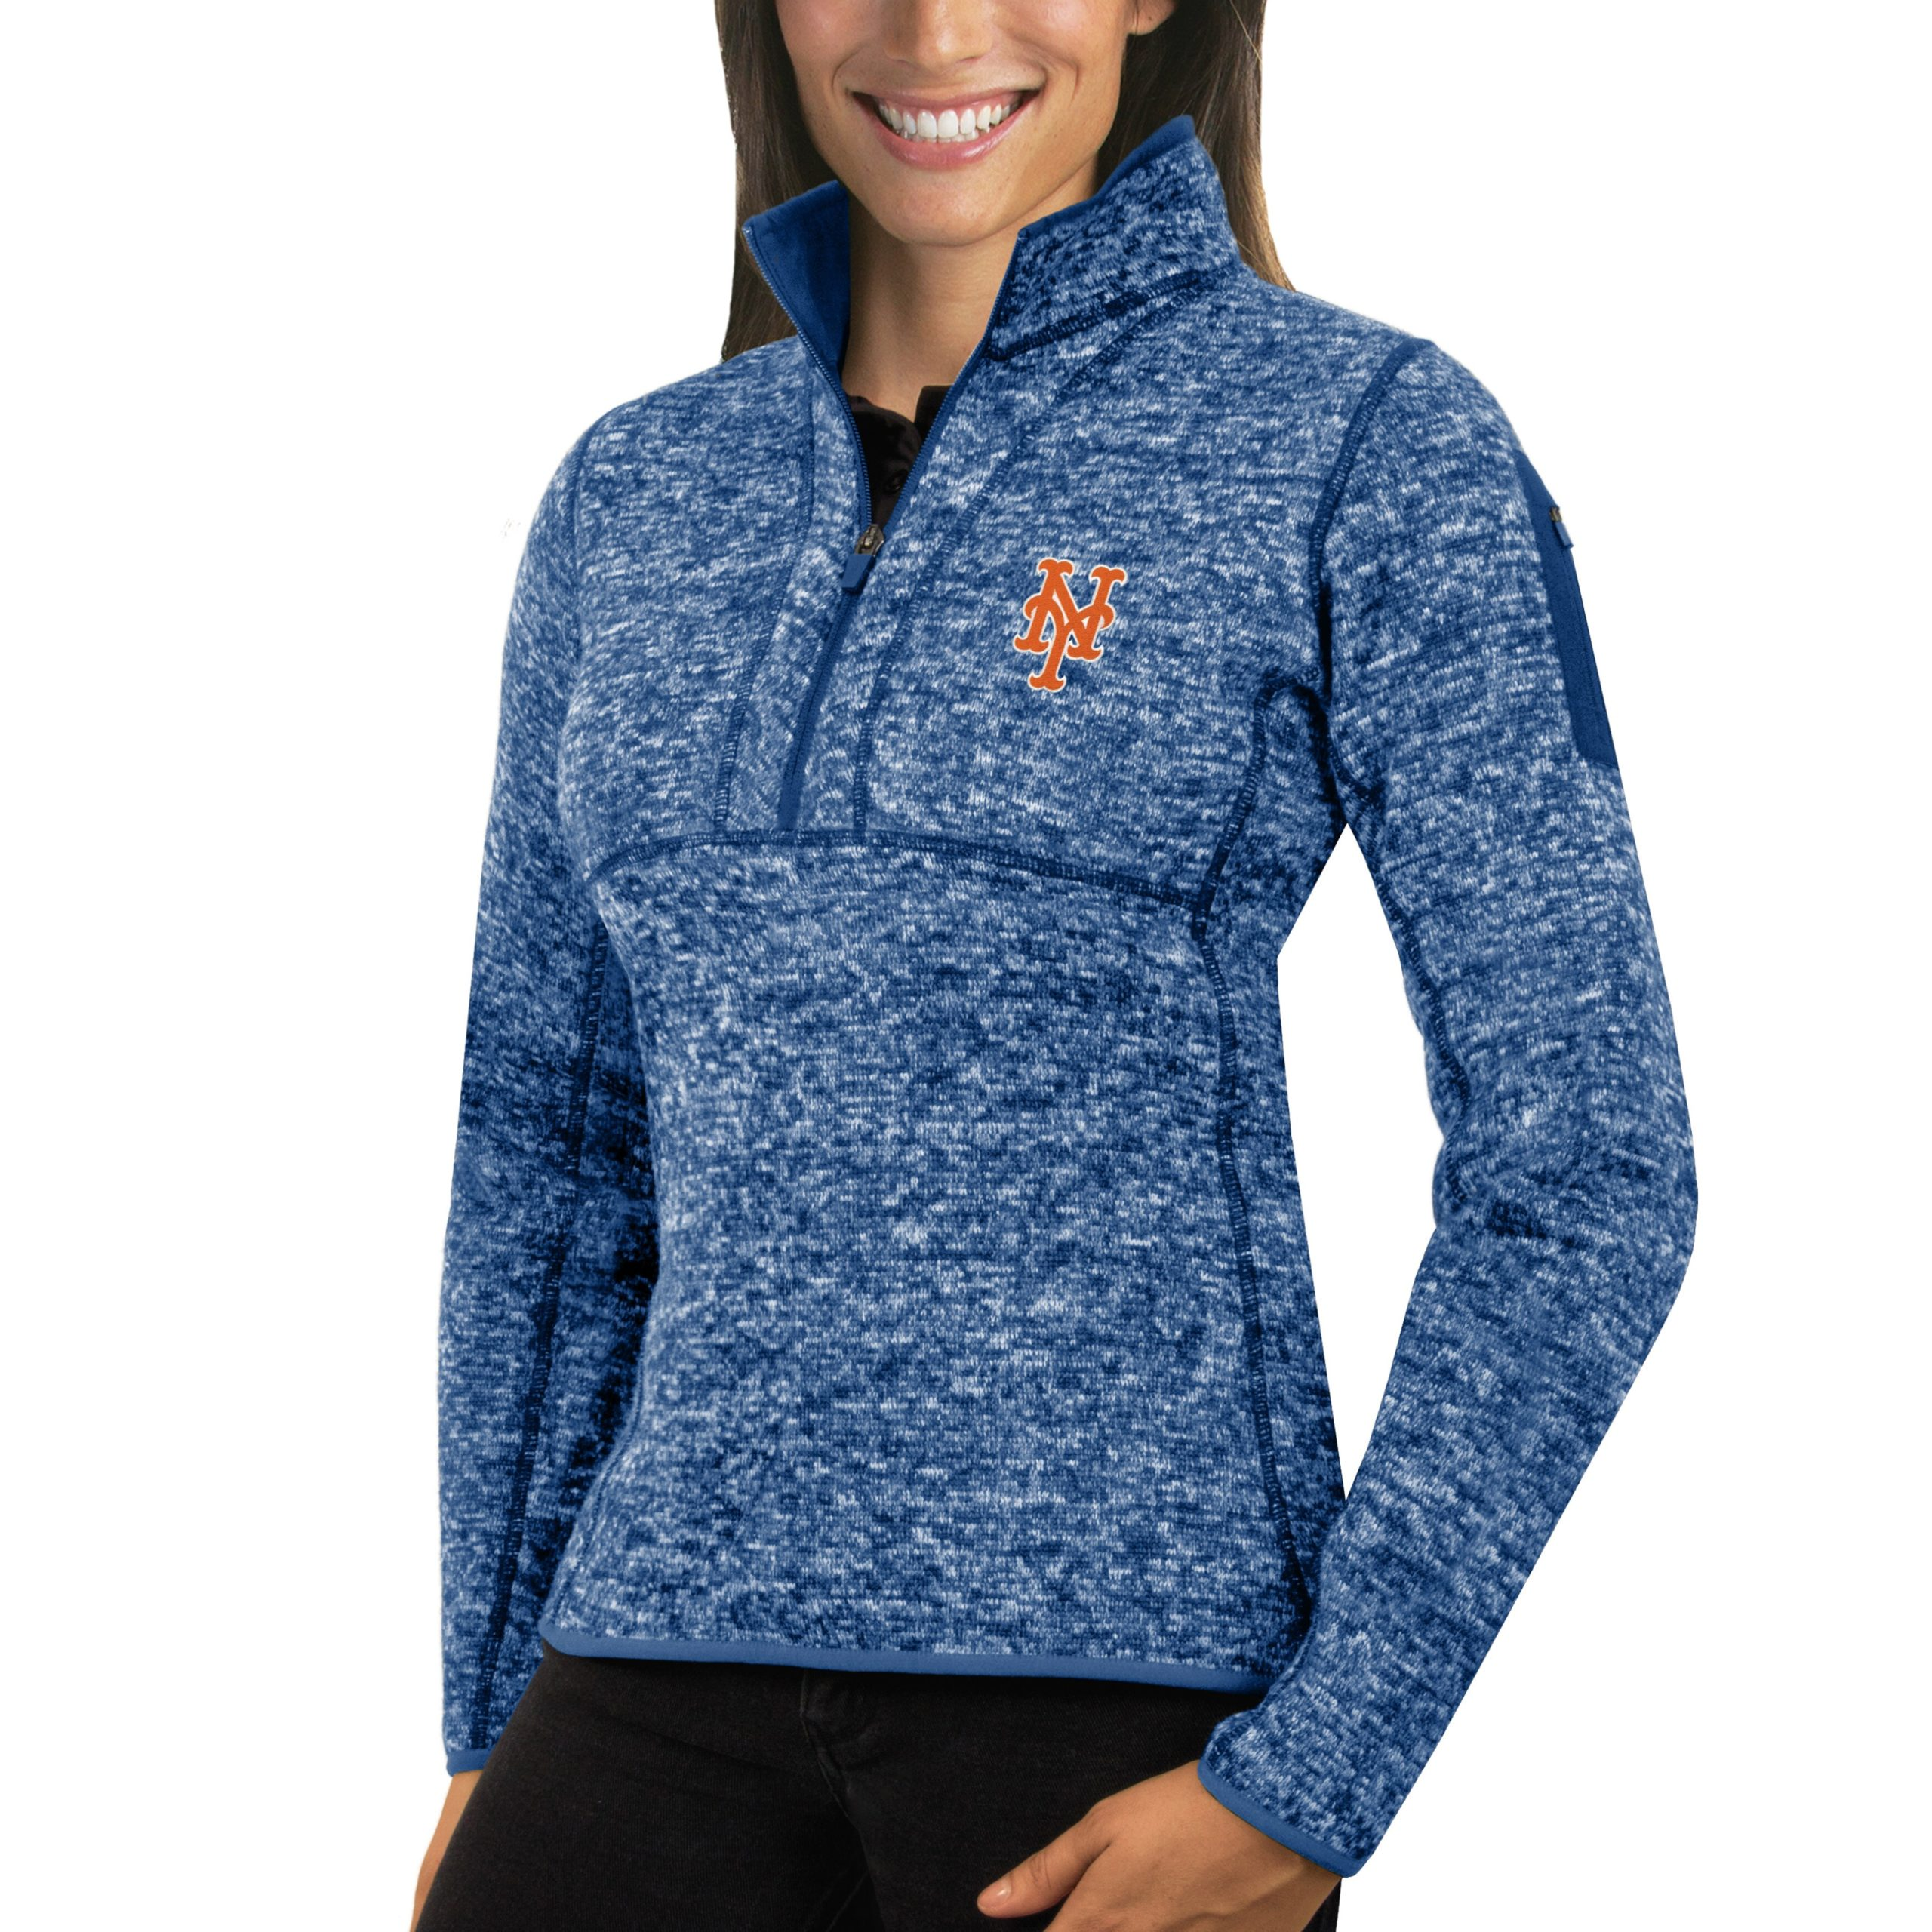 New York Mets Antigua Women's Fortune Half-Zip Pullover Sweater - Heathered Royal